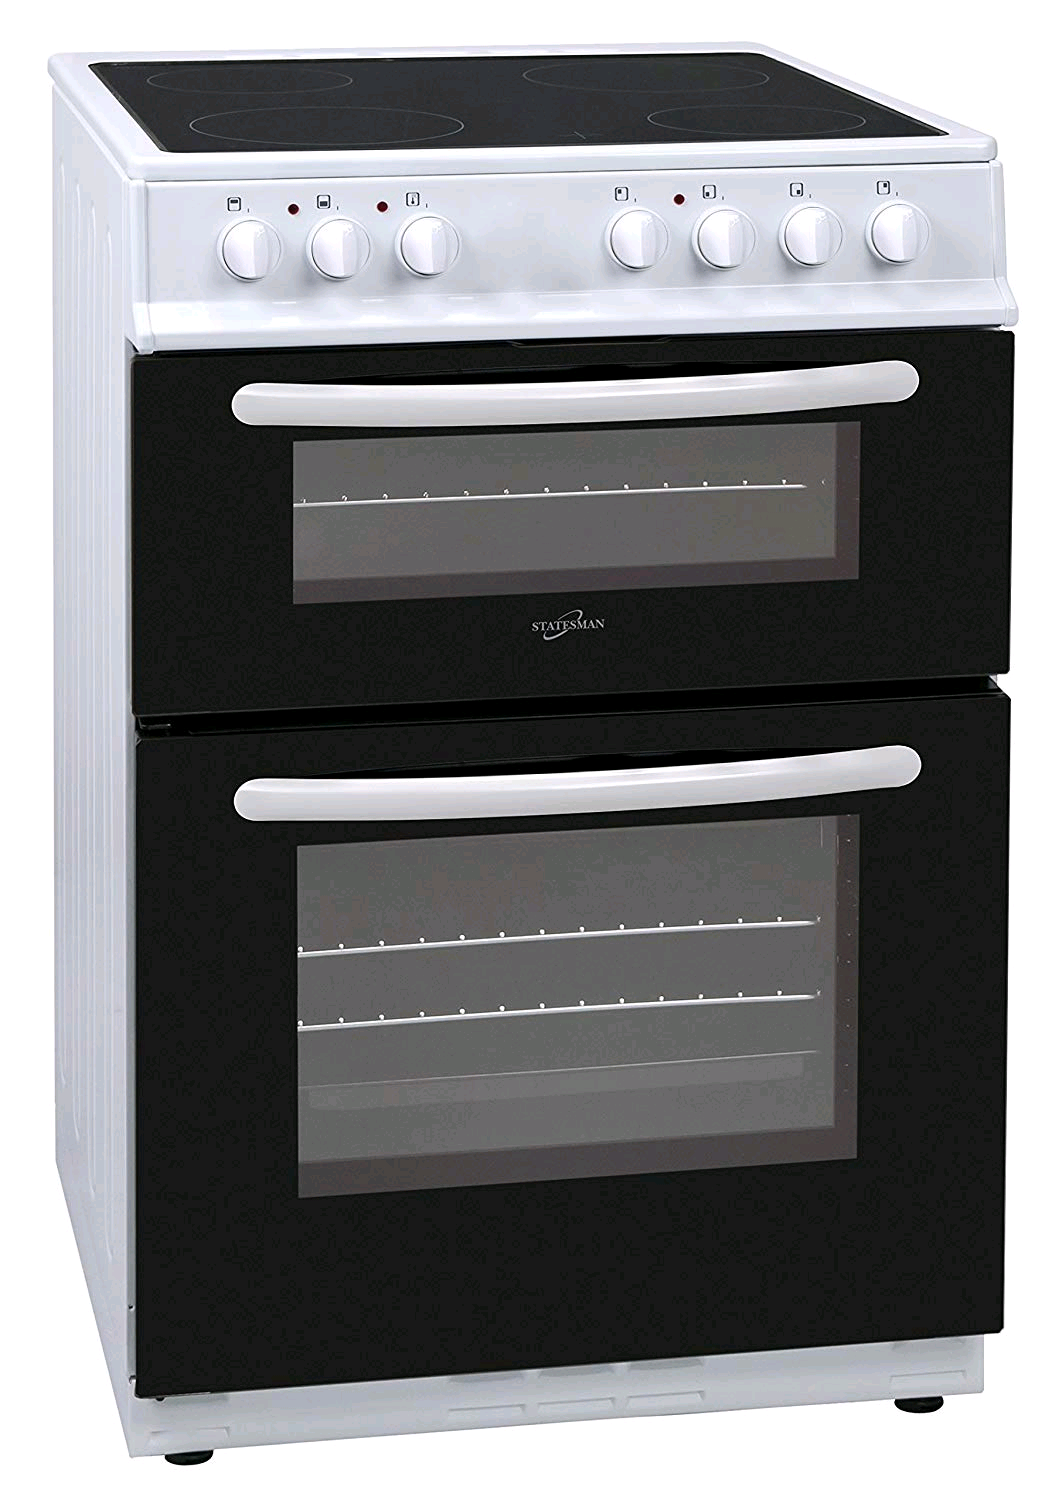 Statesman Apollo EDC60W 60cm Double Oven Ceramic Hob Cooker - White Fan assisted 76/56 Nett Litre Capacity